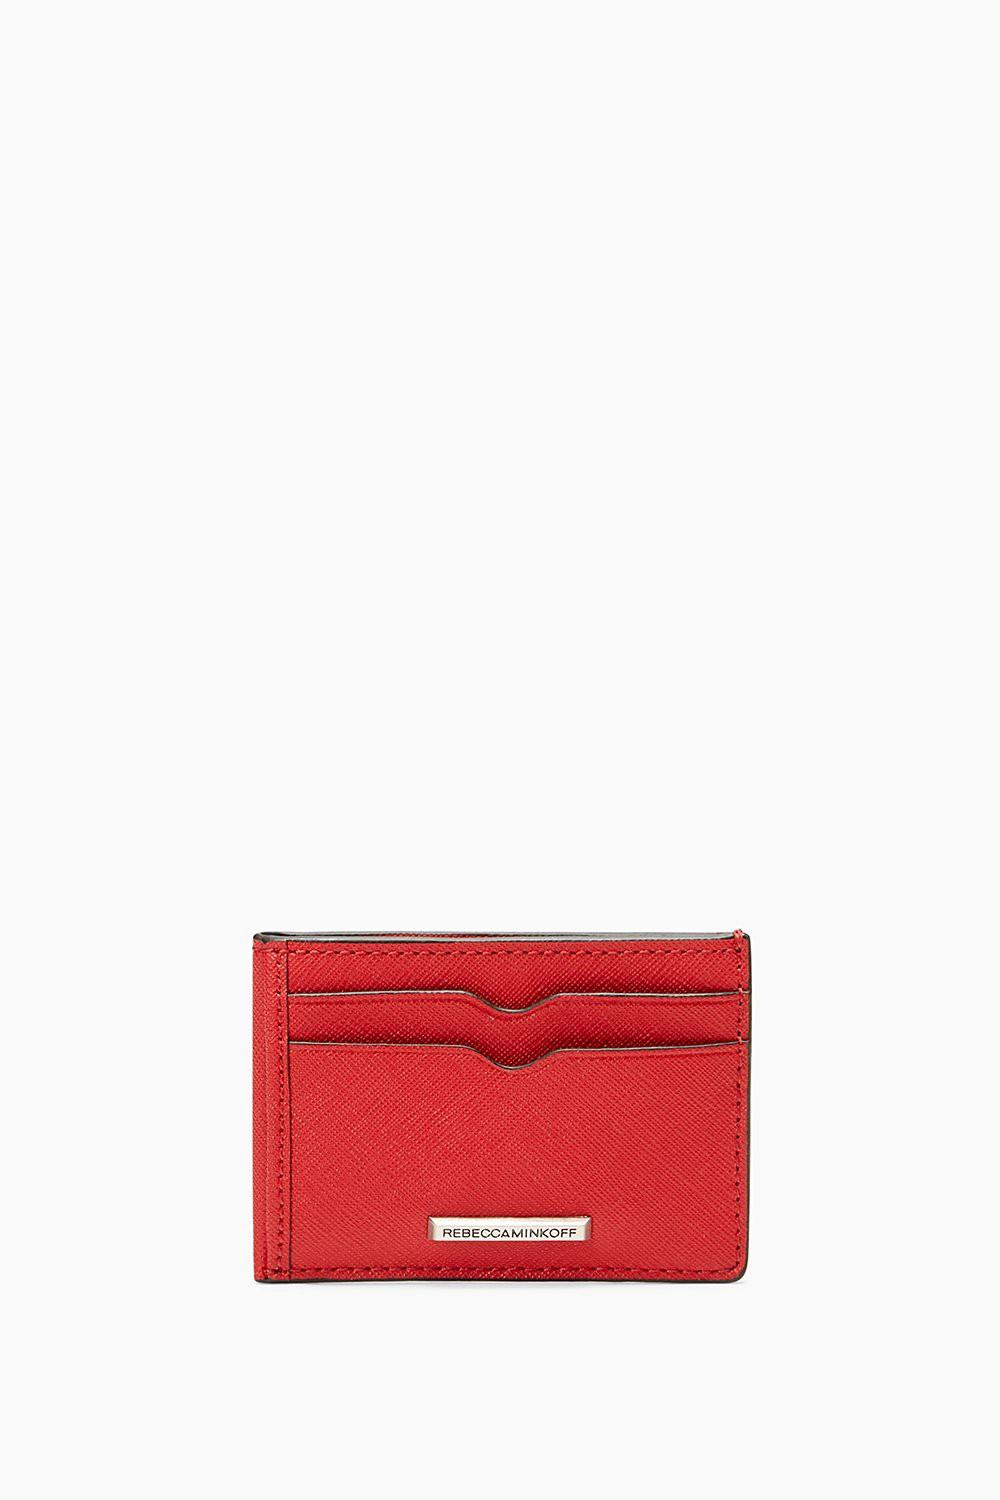 Rebecca Minkoff Saffiano Leather Metro Card Case In Carnation